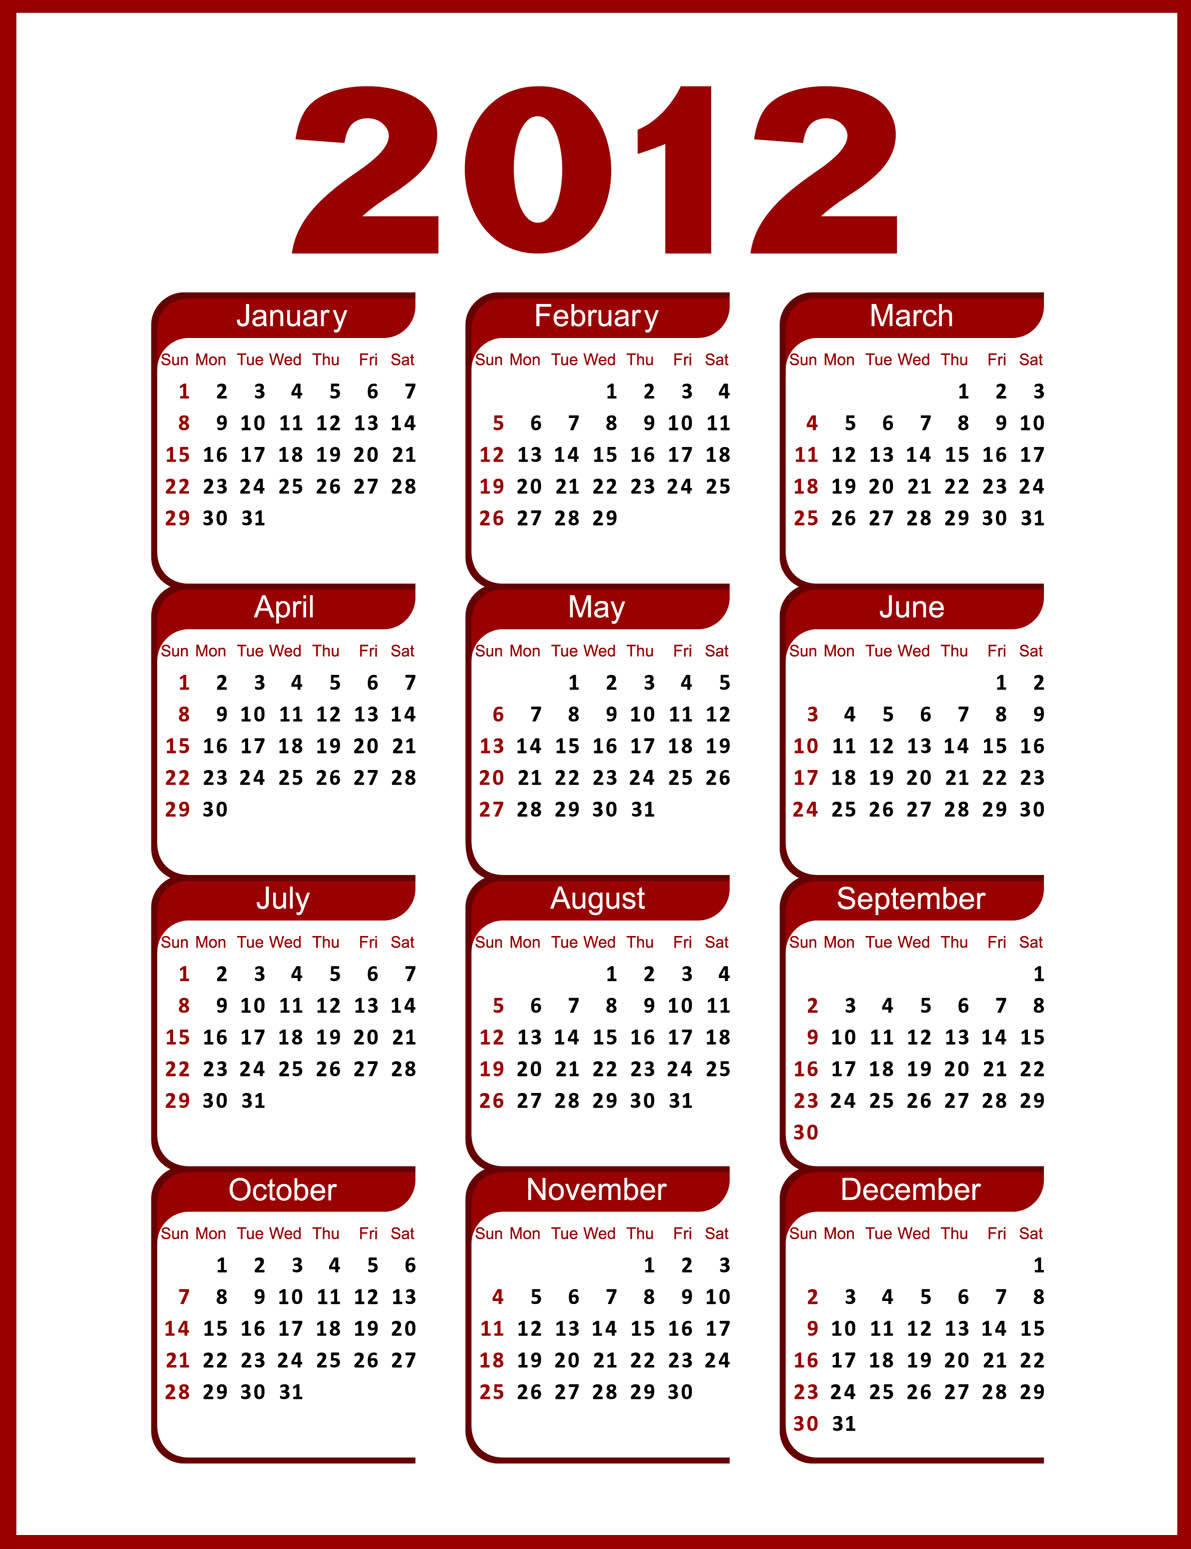 Calendar Monthly Meaning : The copyright year